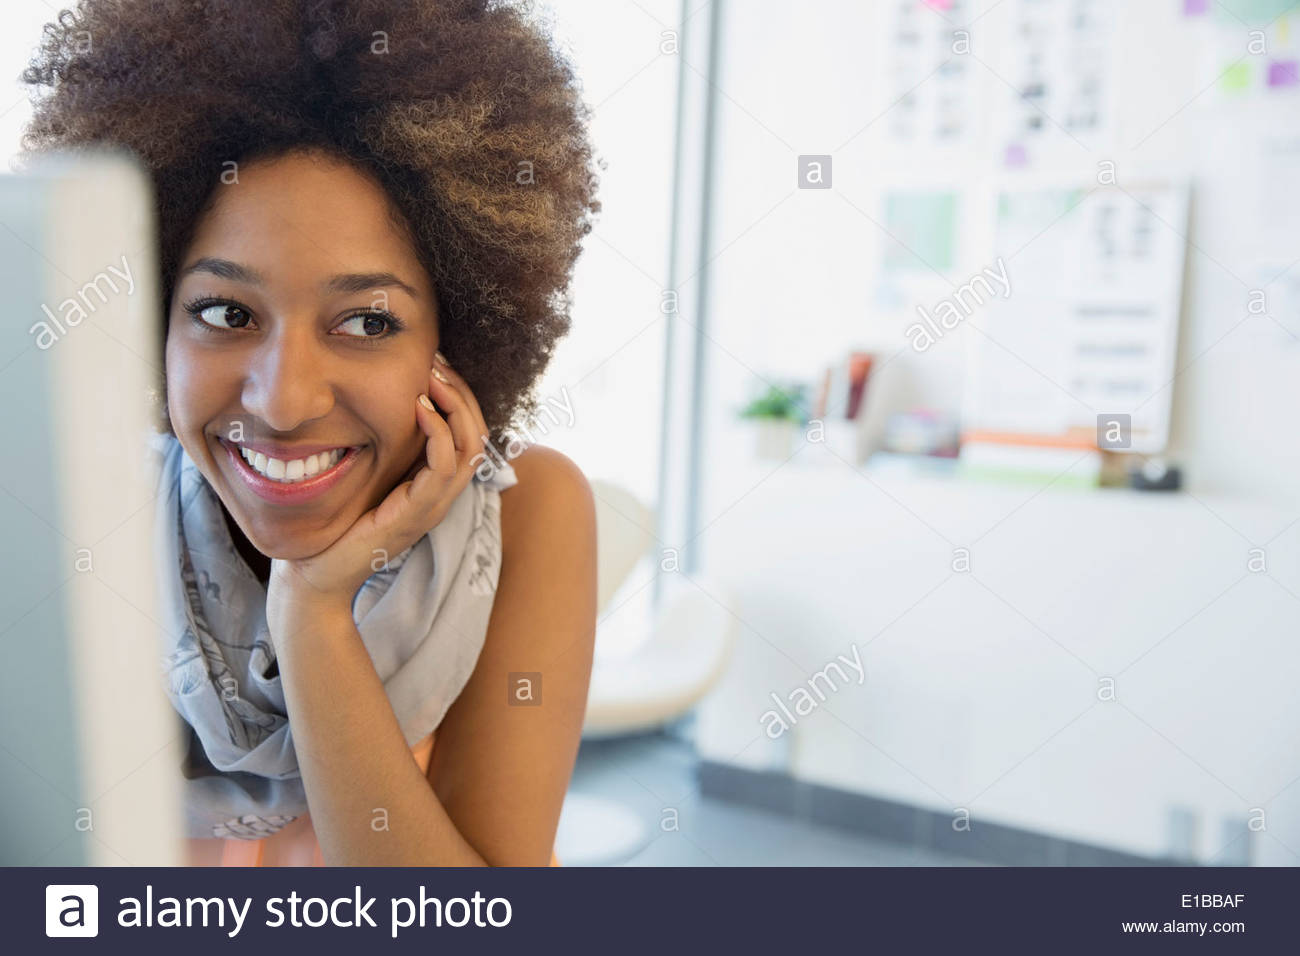 Smiling businesswoman in office - Stock Image